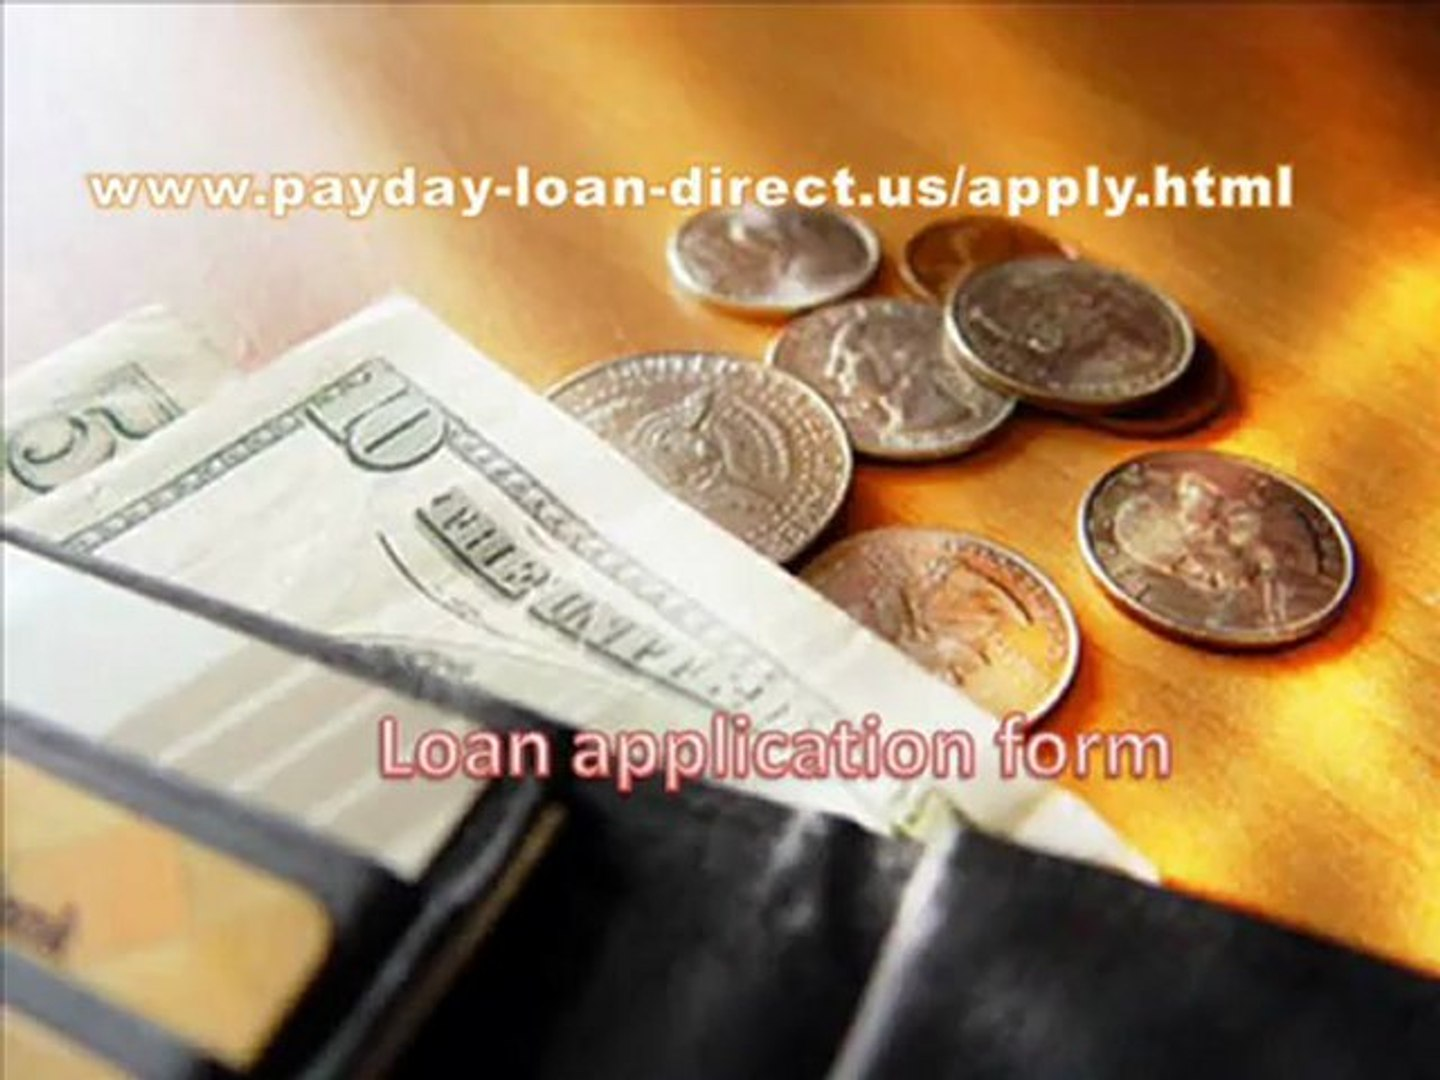 How does payday loans work